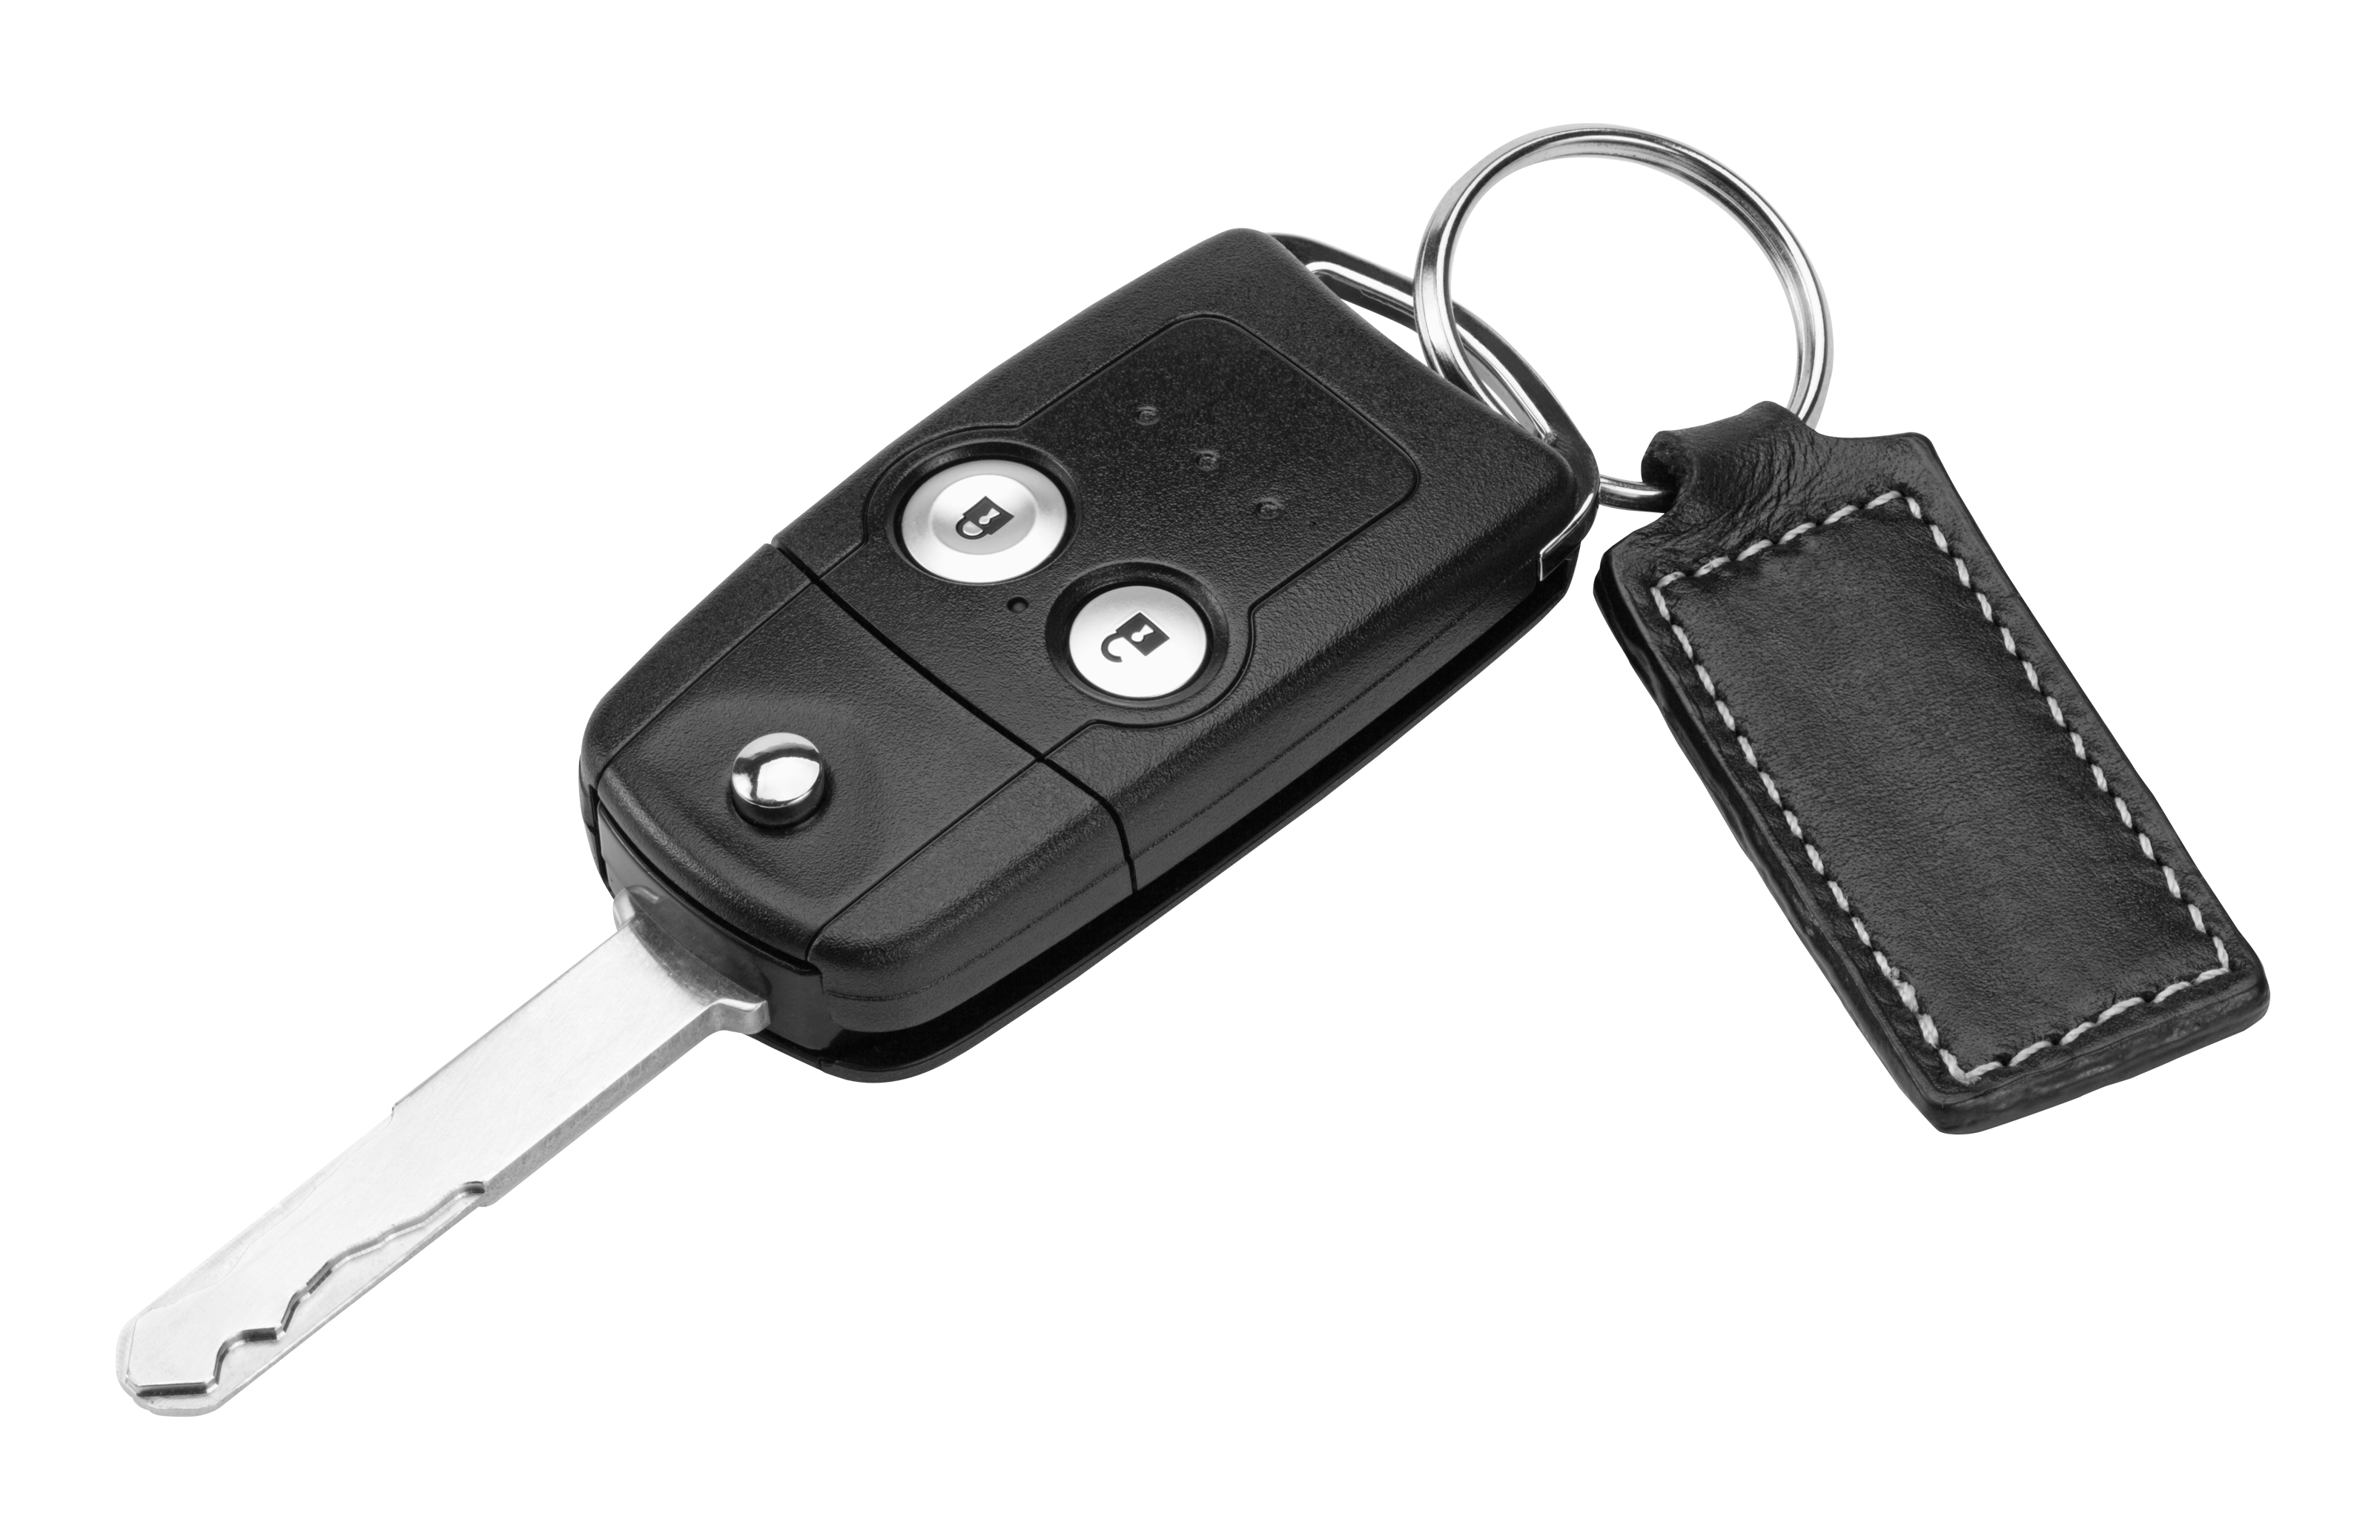 car keys white background png